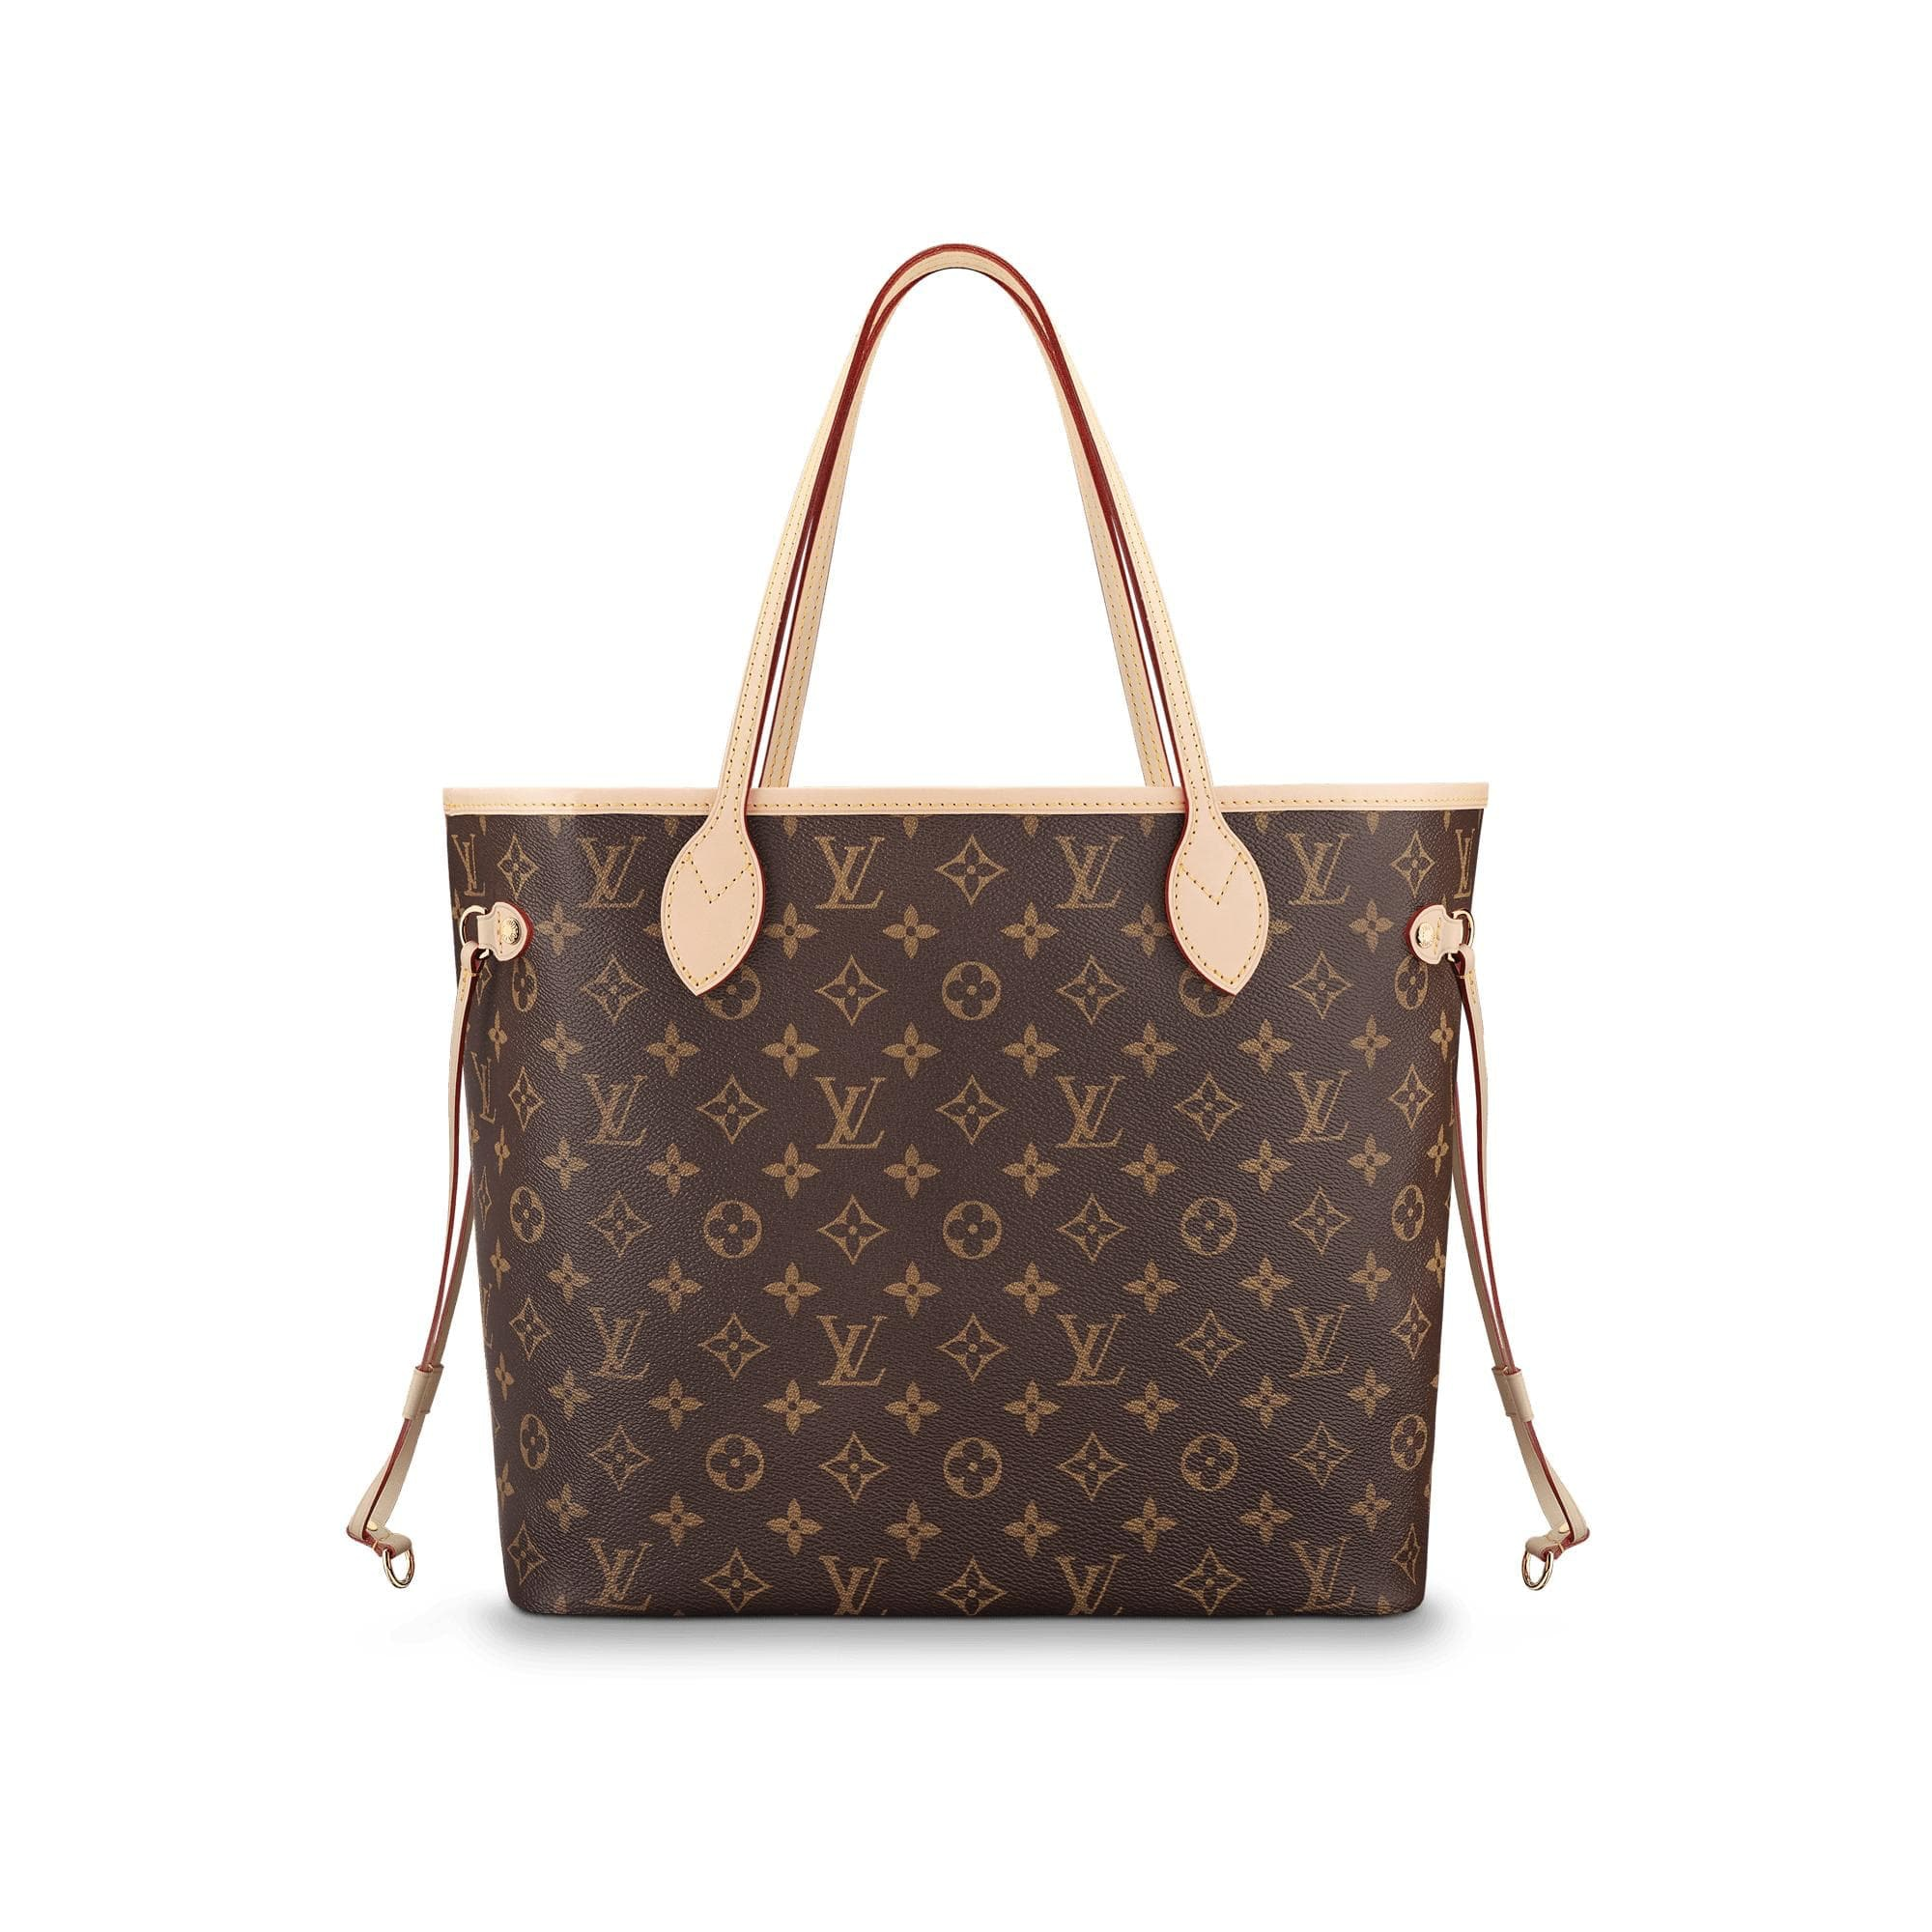 Louis Vuitton Neverfull Monogram MM Cerise